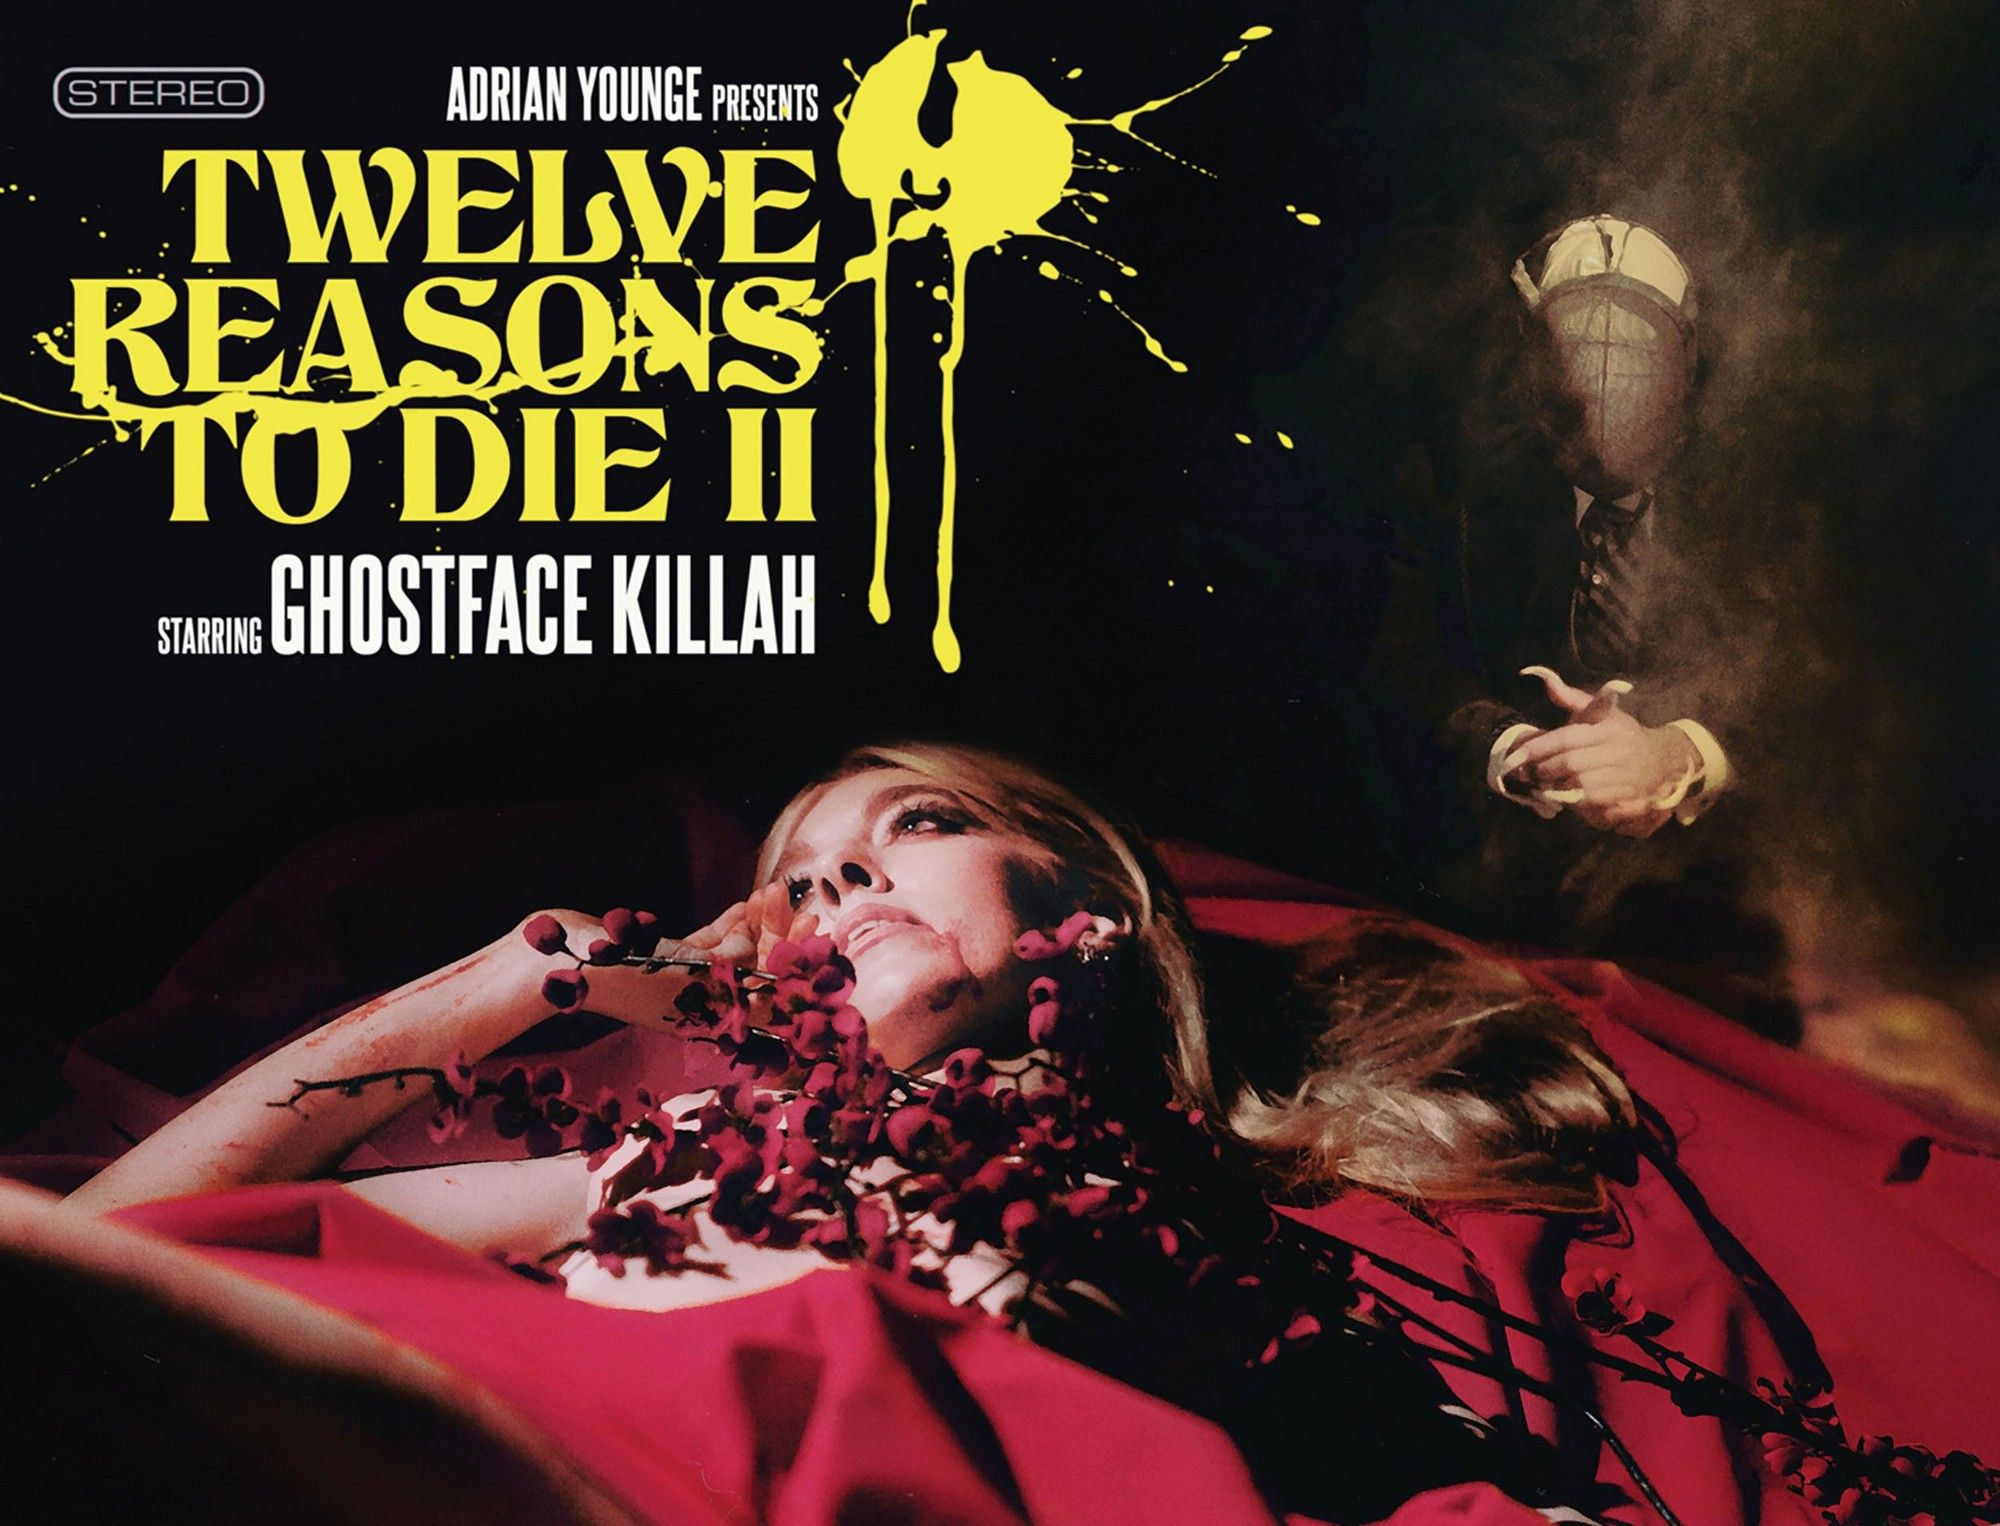 Deconstructing Ghostface Killah S 12 Reasons To Die Ii Ghostface Killah Adrian Younge Ghostface